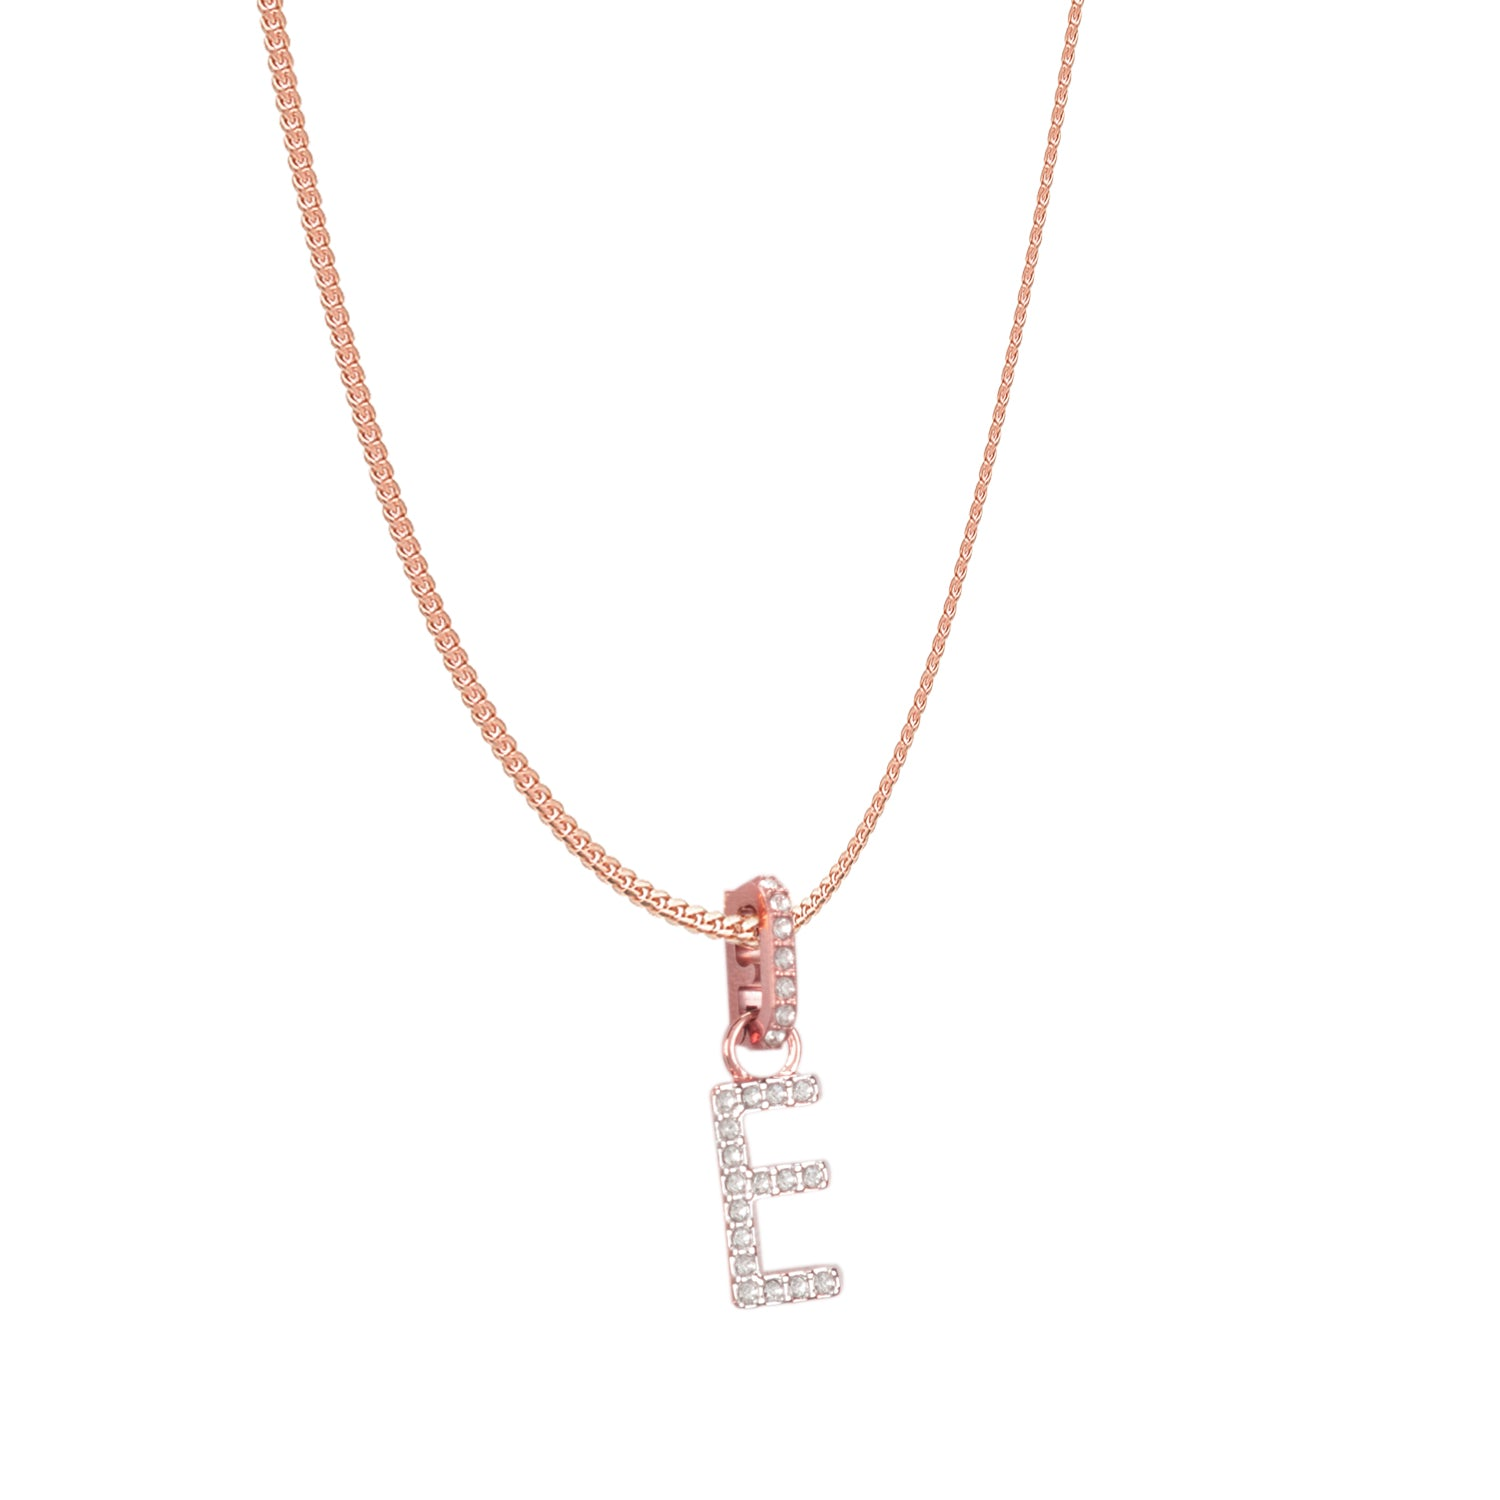 Swarovski Remix Collection E White Charm In Rose-Gold Tone Plated | Shop Luxury Swarovski Charm Online